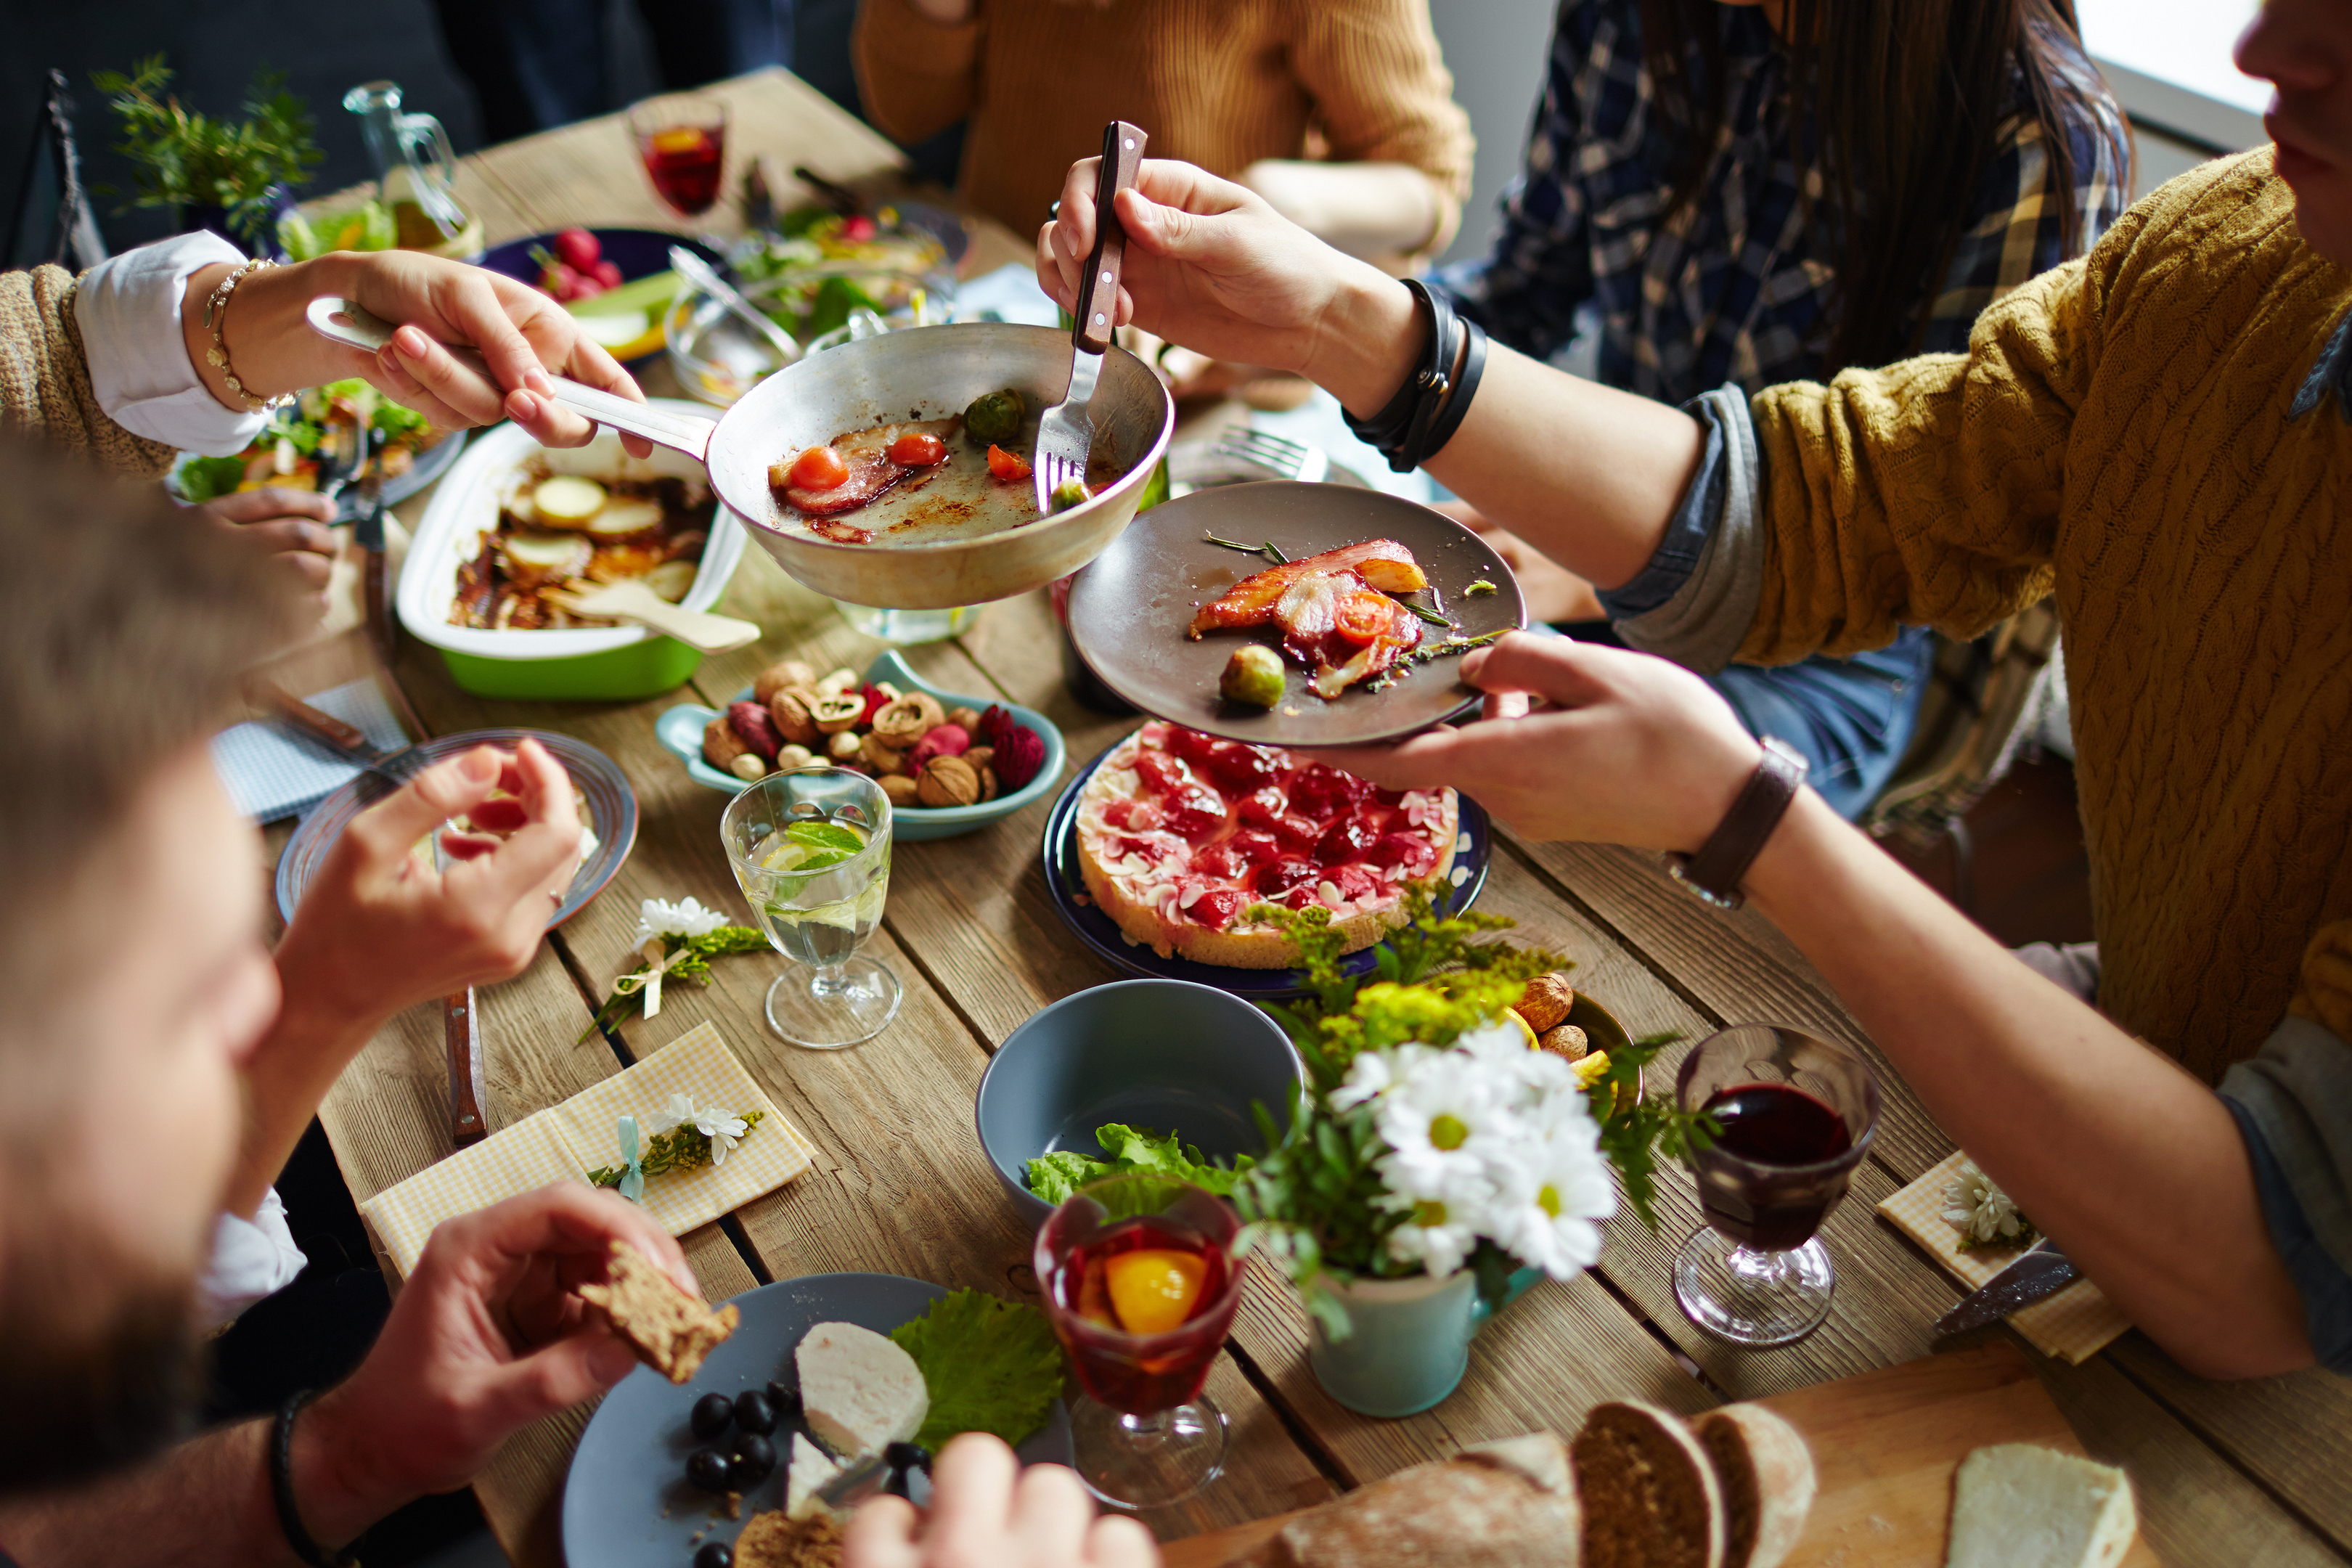 People sitting at dining table and eating (iStock)